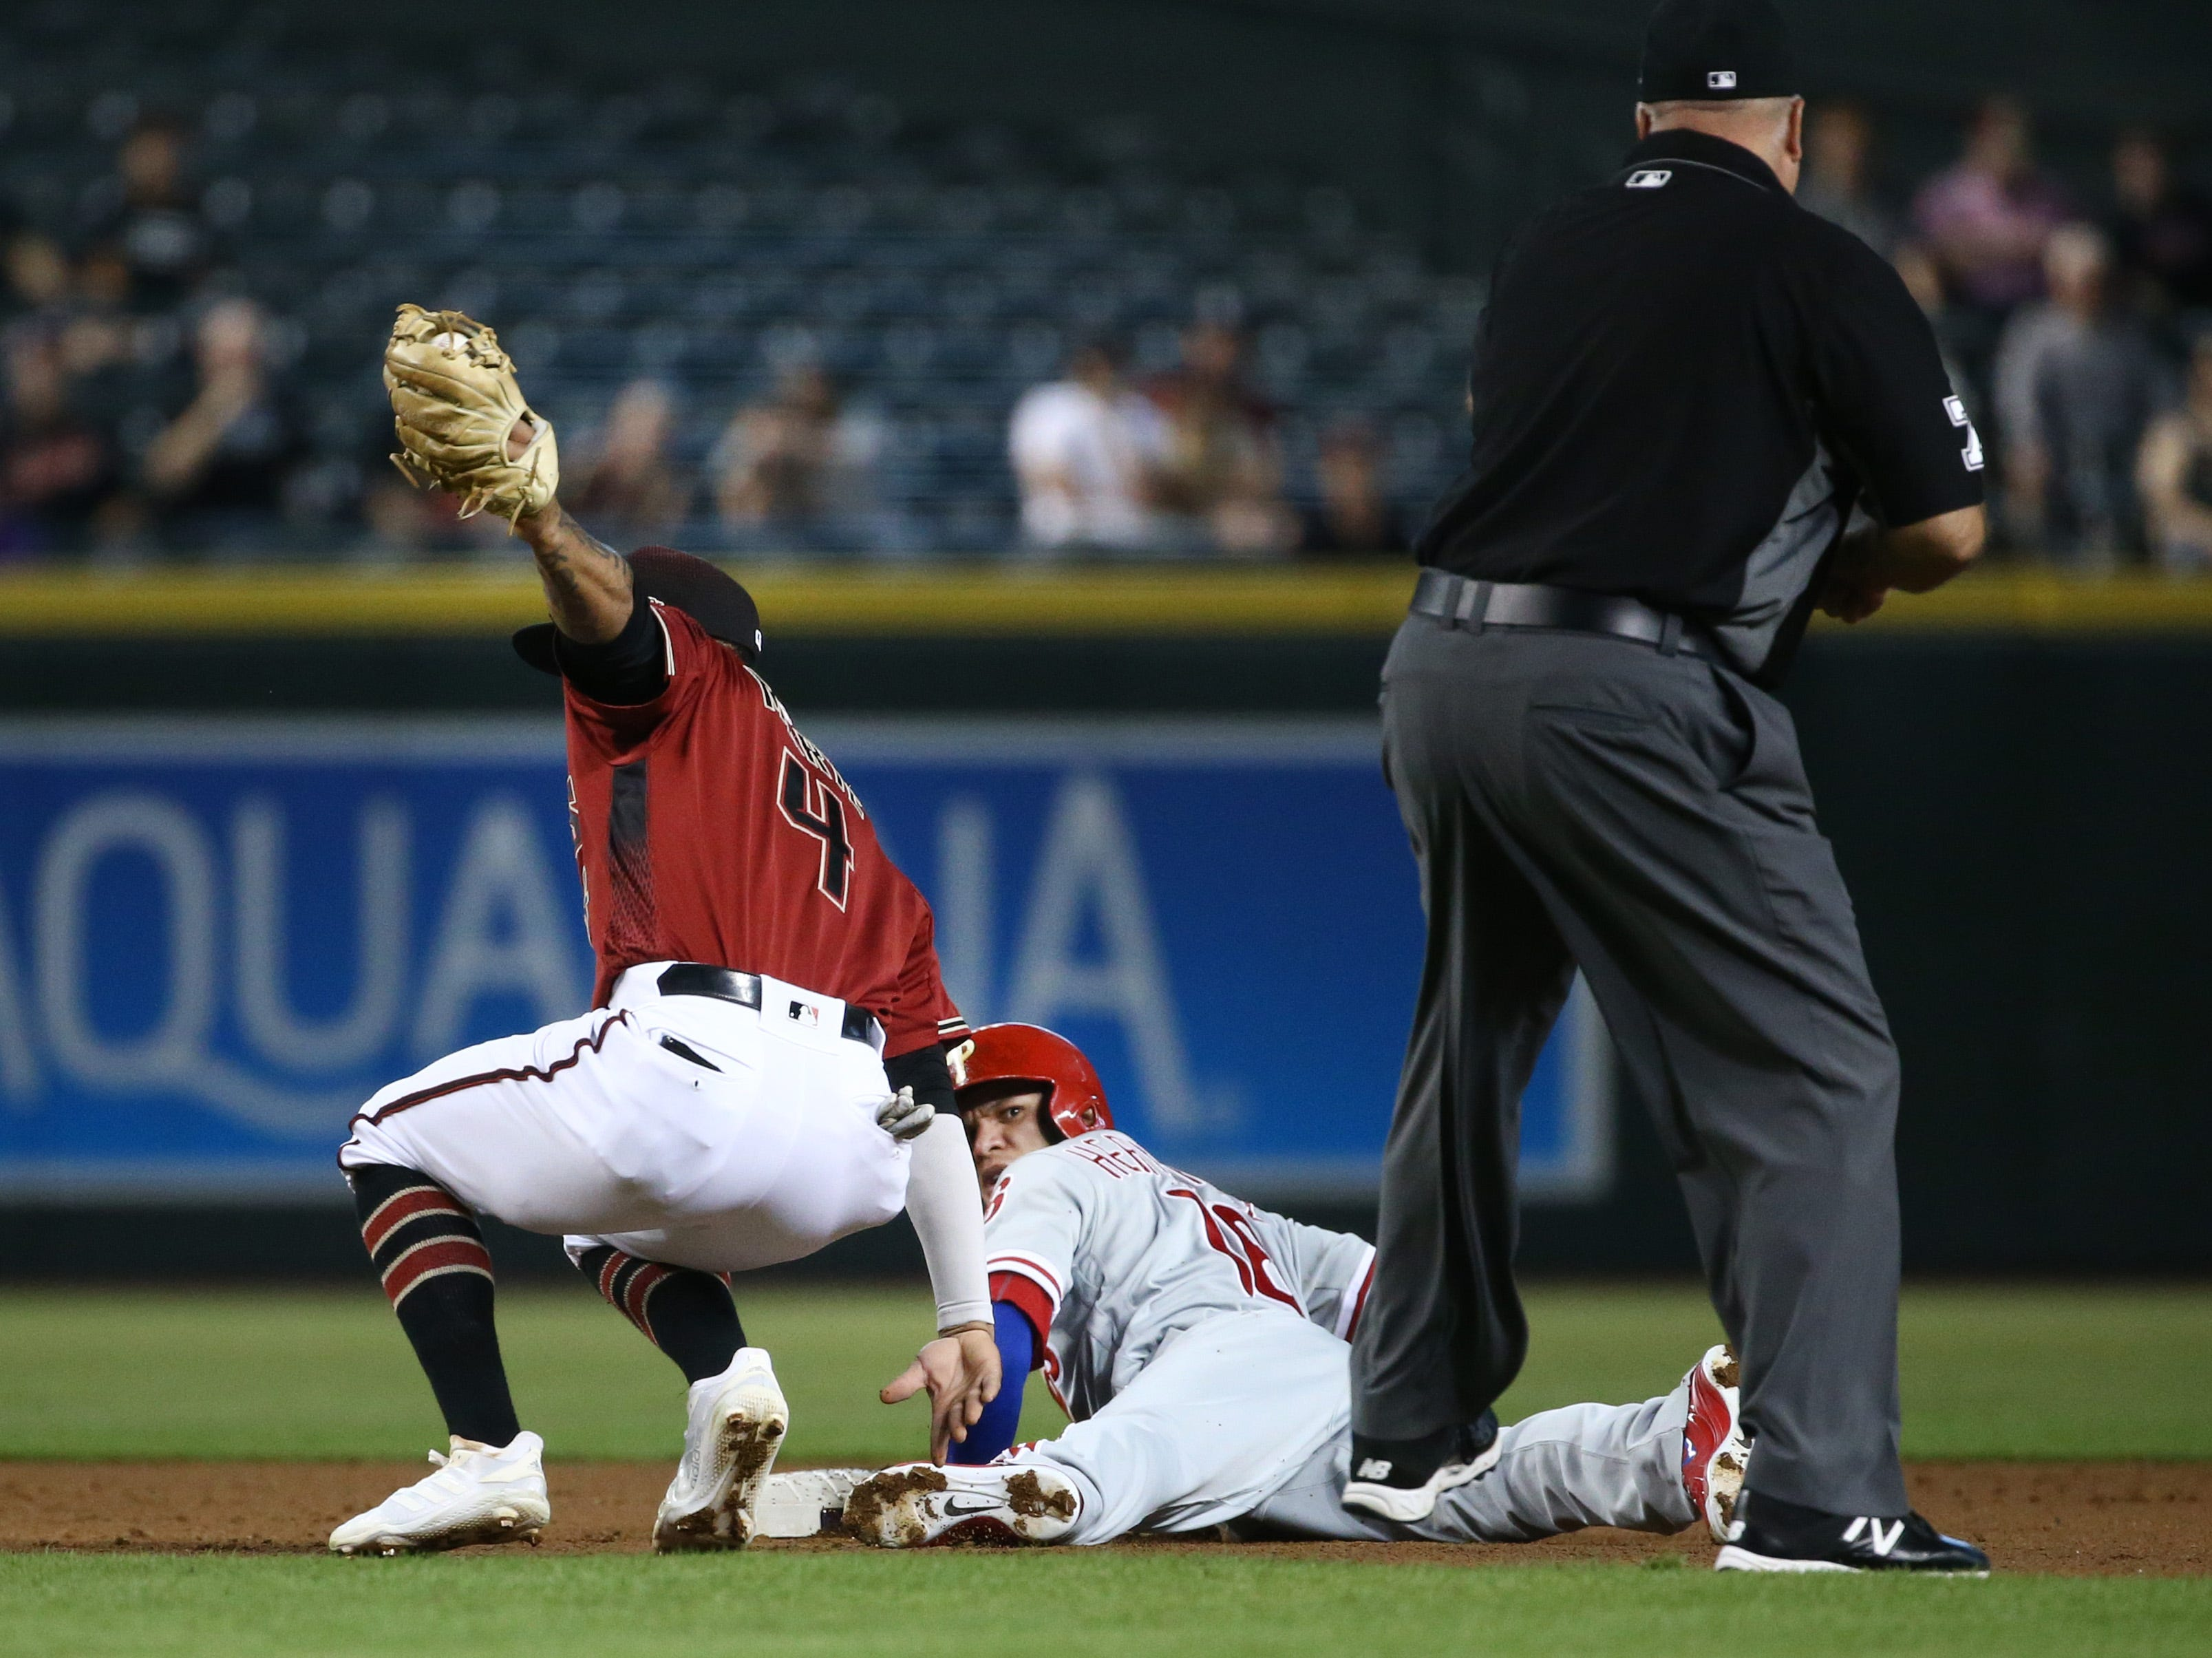 Arizona Diamondbacks Ketel Marte tags out Philadelphia Phillies Cesar Hernandez trying to steal second base in the first inning on Aug. 8, 2018, at Chase Field in Phoenix, Ariz.